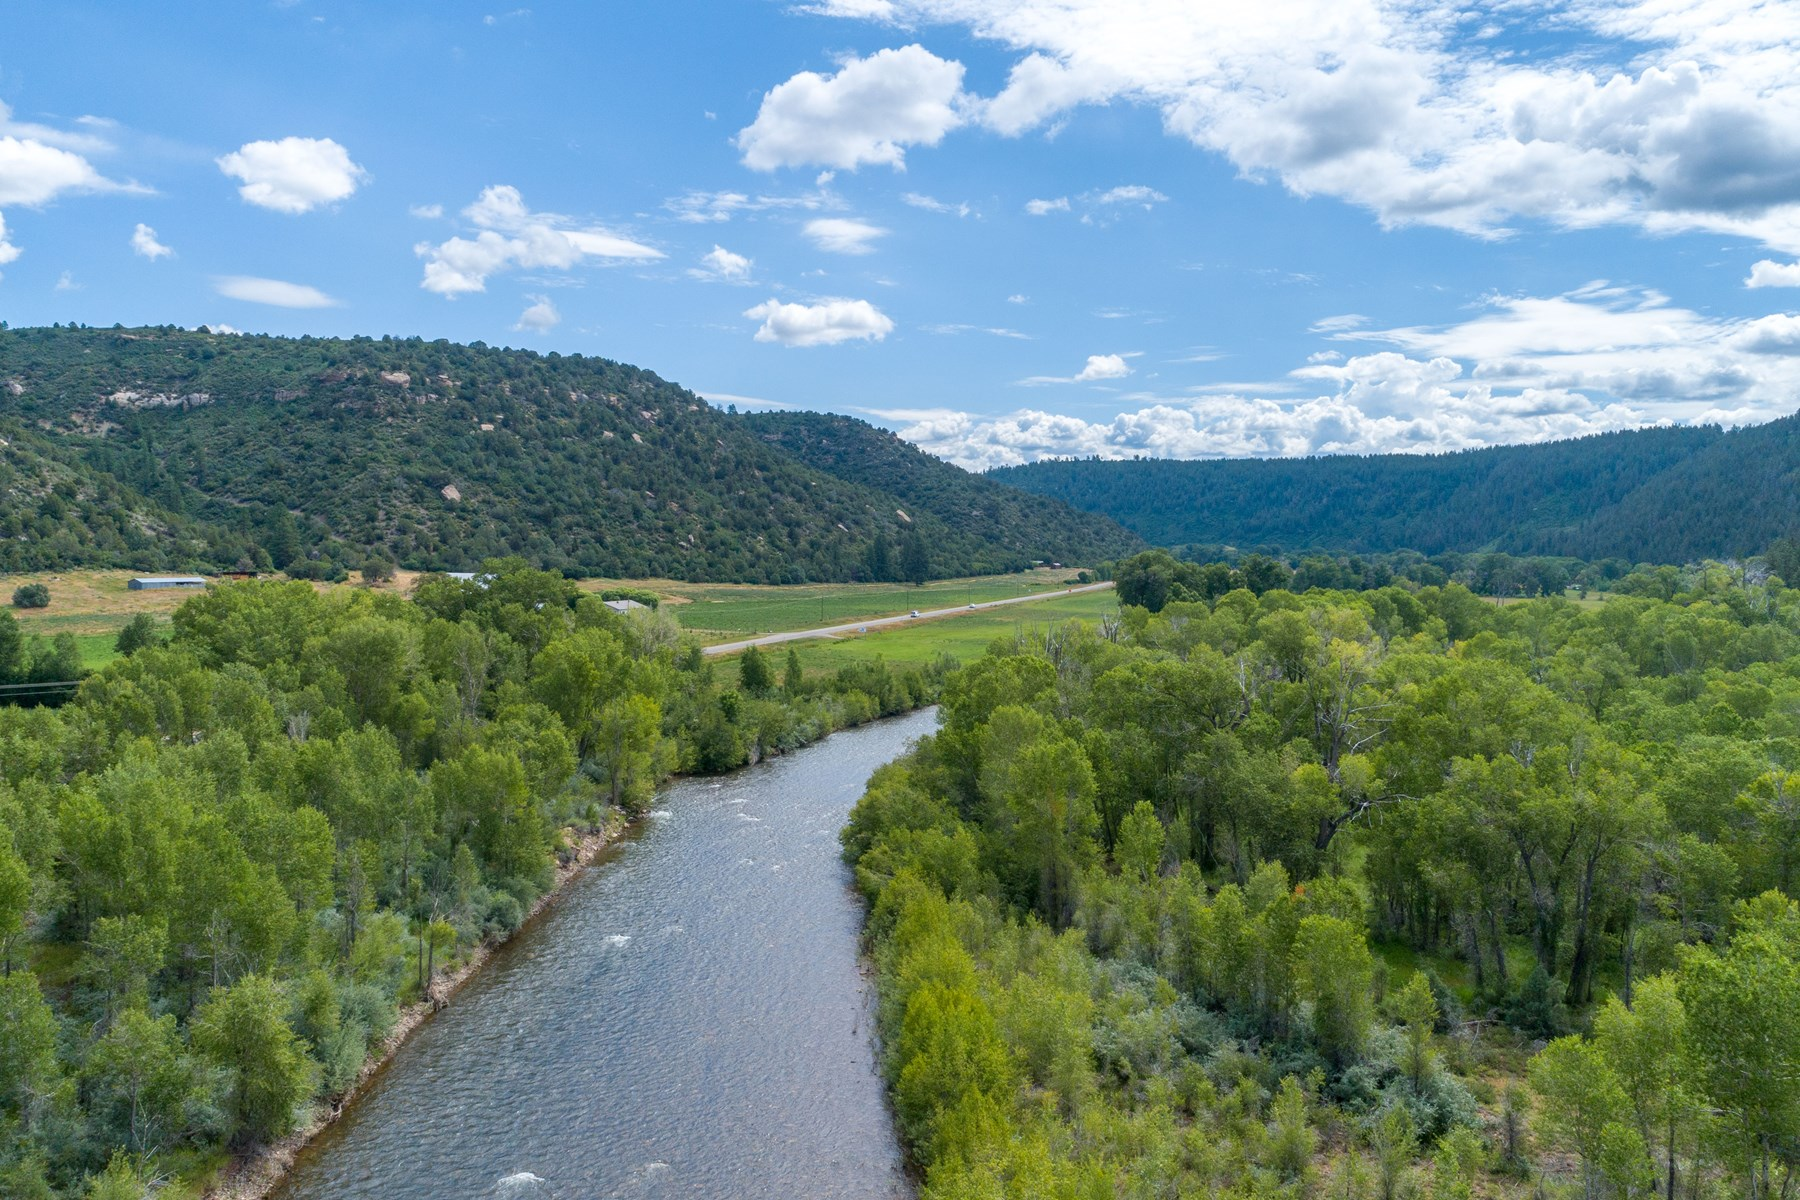 18 acres of private land on the Dolores River, Colorado